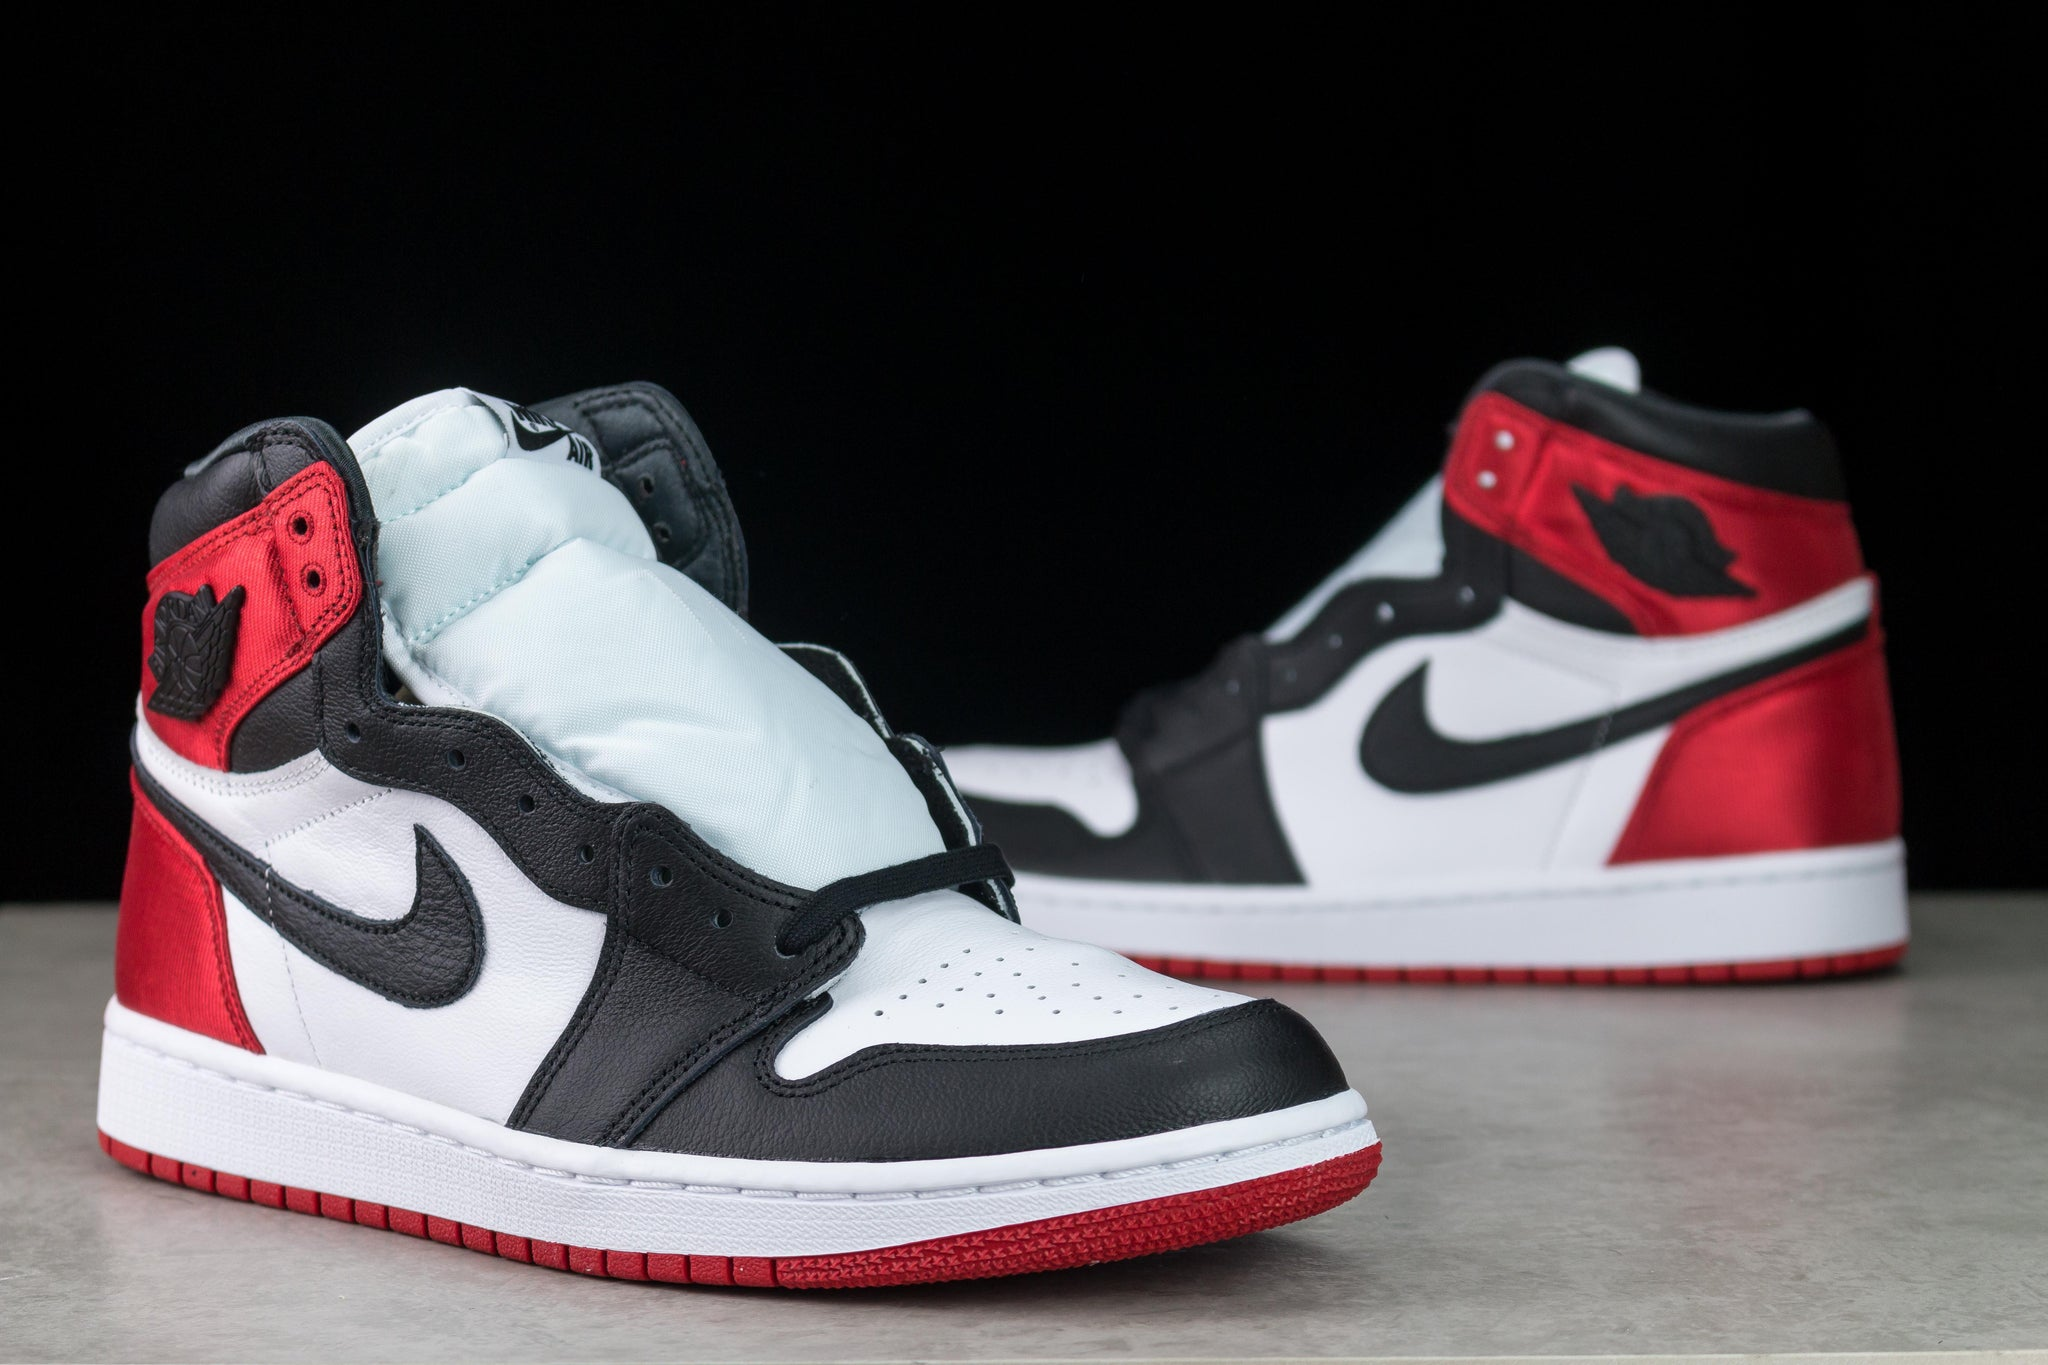 Jordan 1 Satin Black Toe